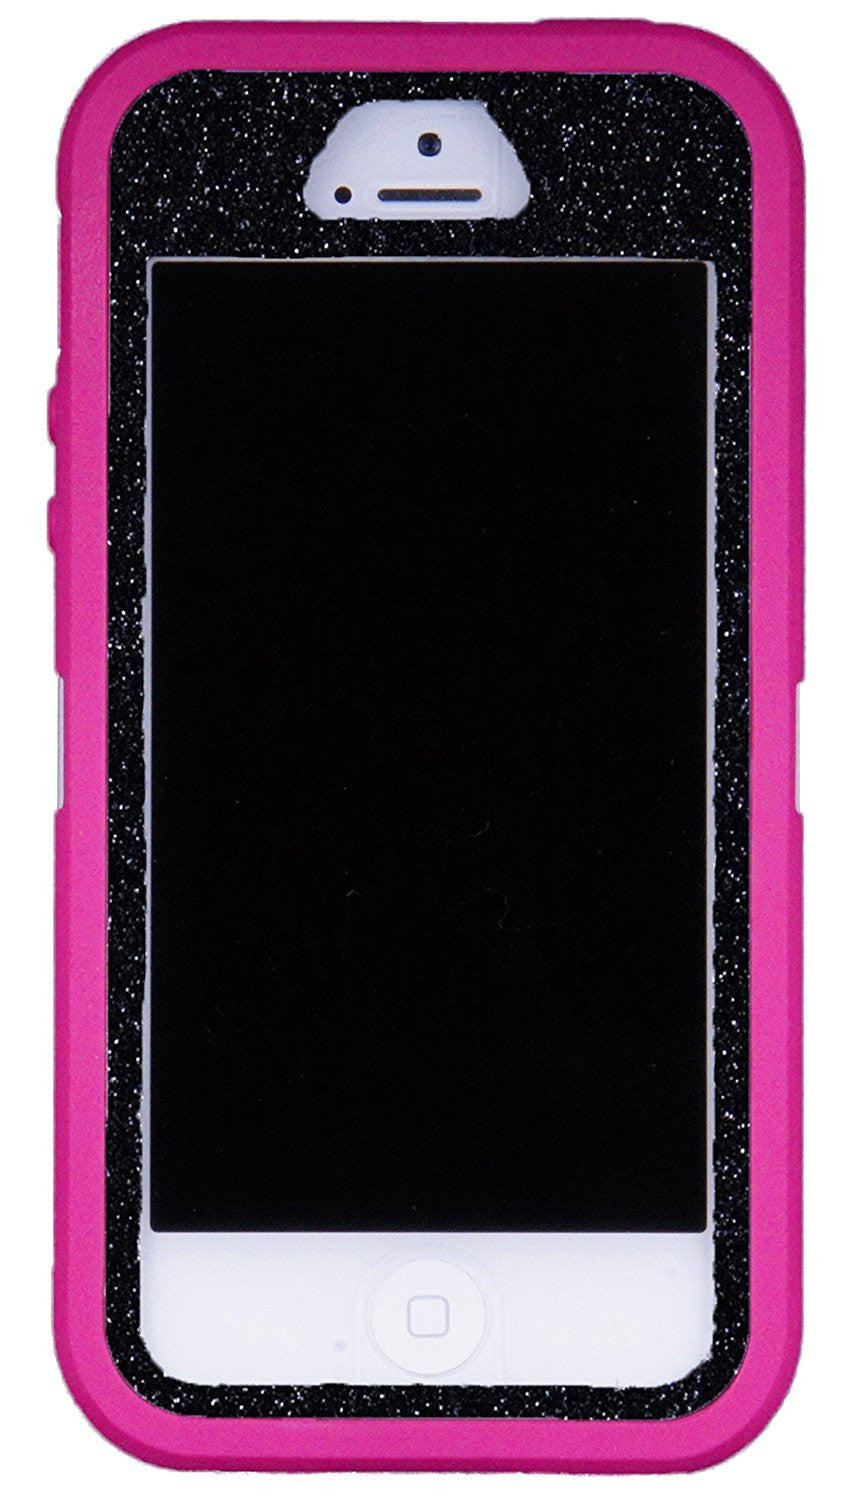 online retailer cba03 1d728 OtterBox Defender Series Case for iPhone 5s - Custom Glitter Case for  iPhone 5s - Pink/Black